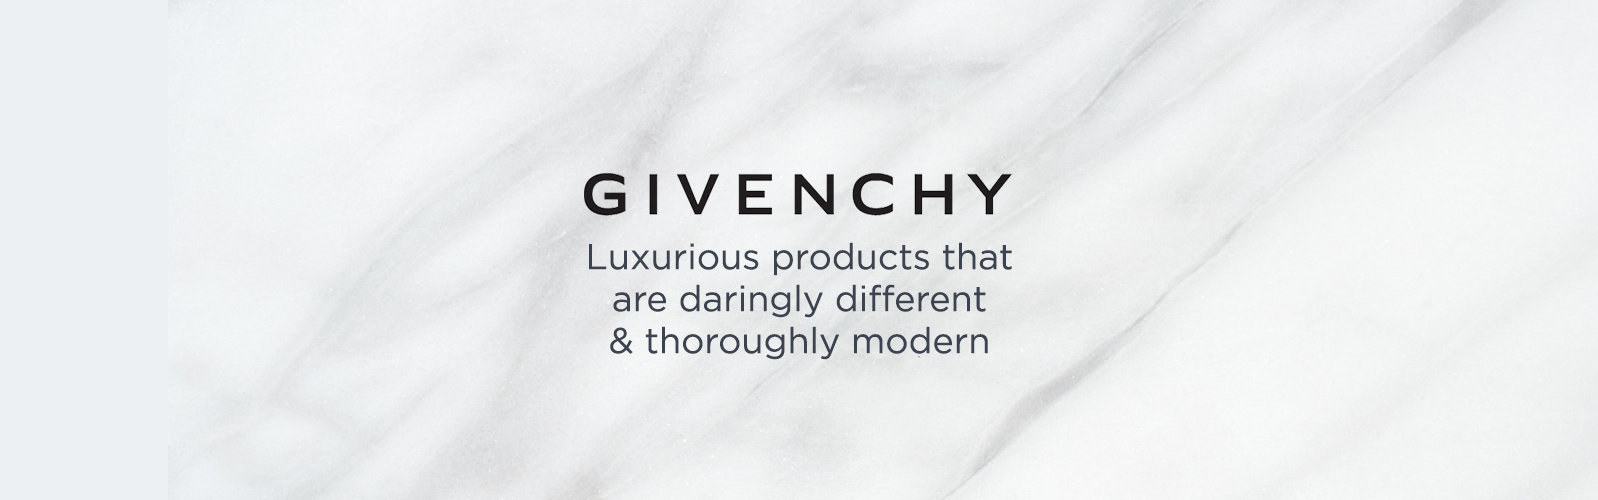 Givenchy,  Luxurious products that are daringly different & thoroughly modern